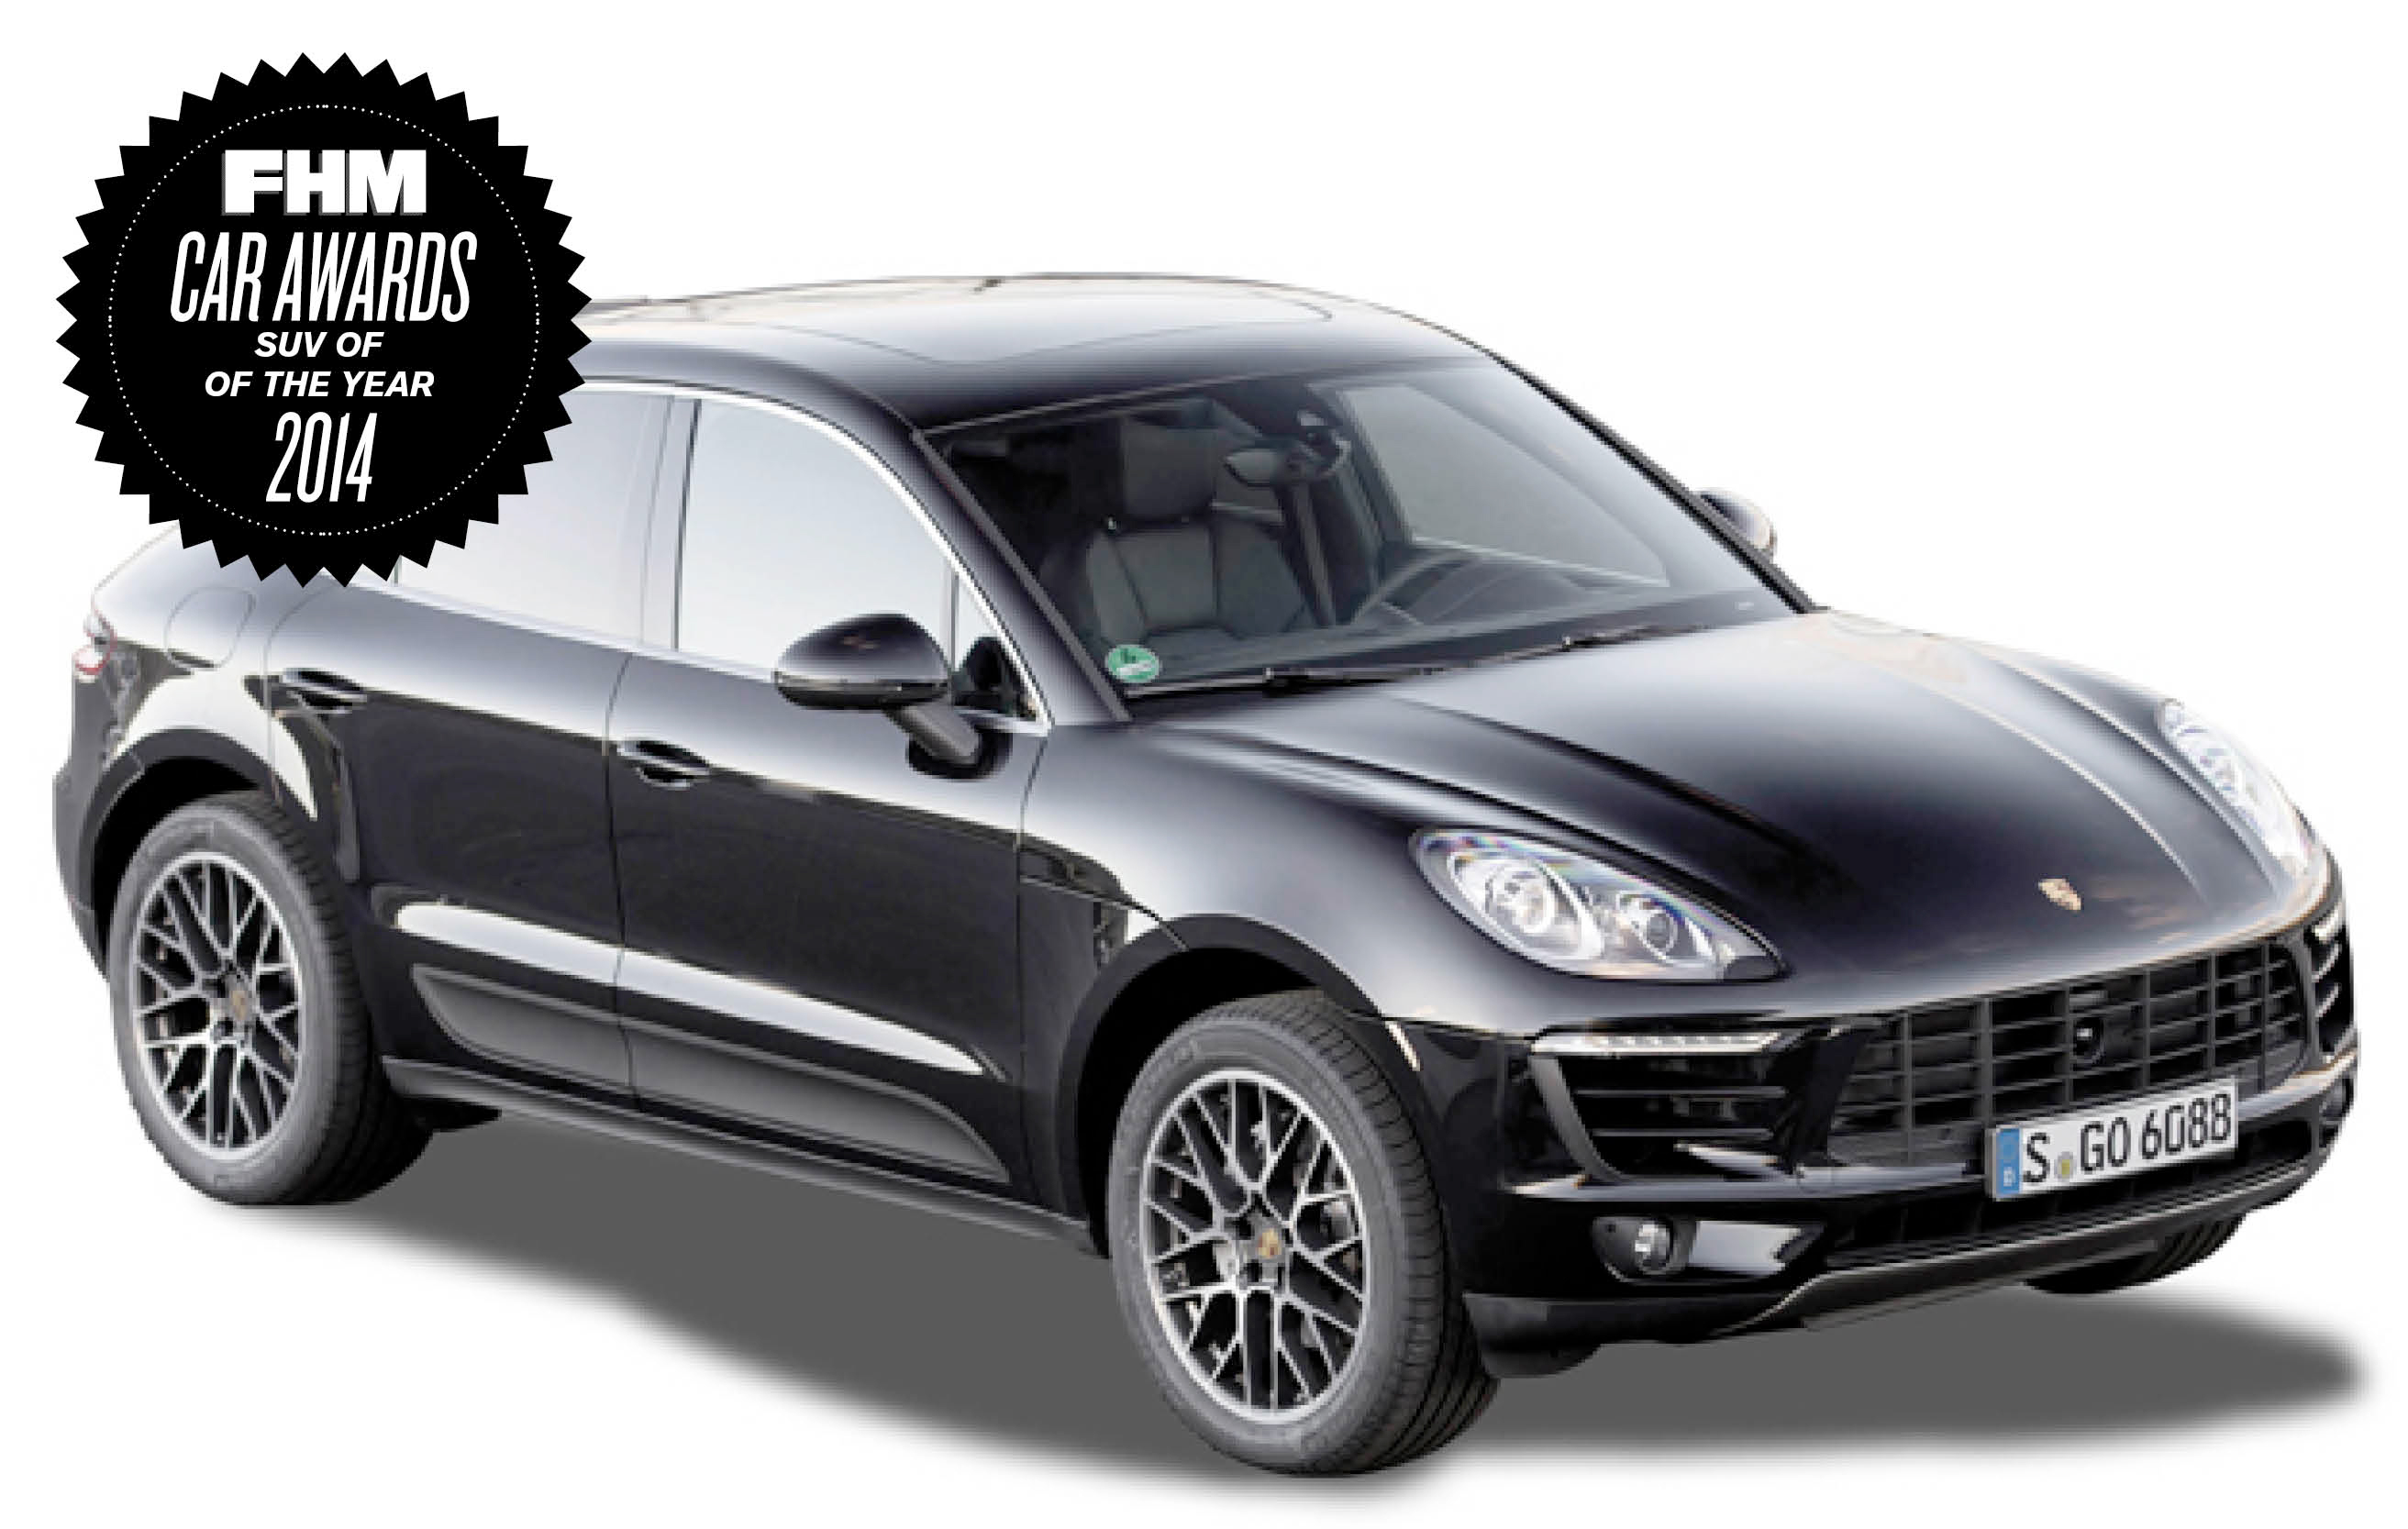 FHM-Cars-of-the-year-SUV